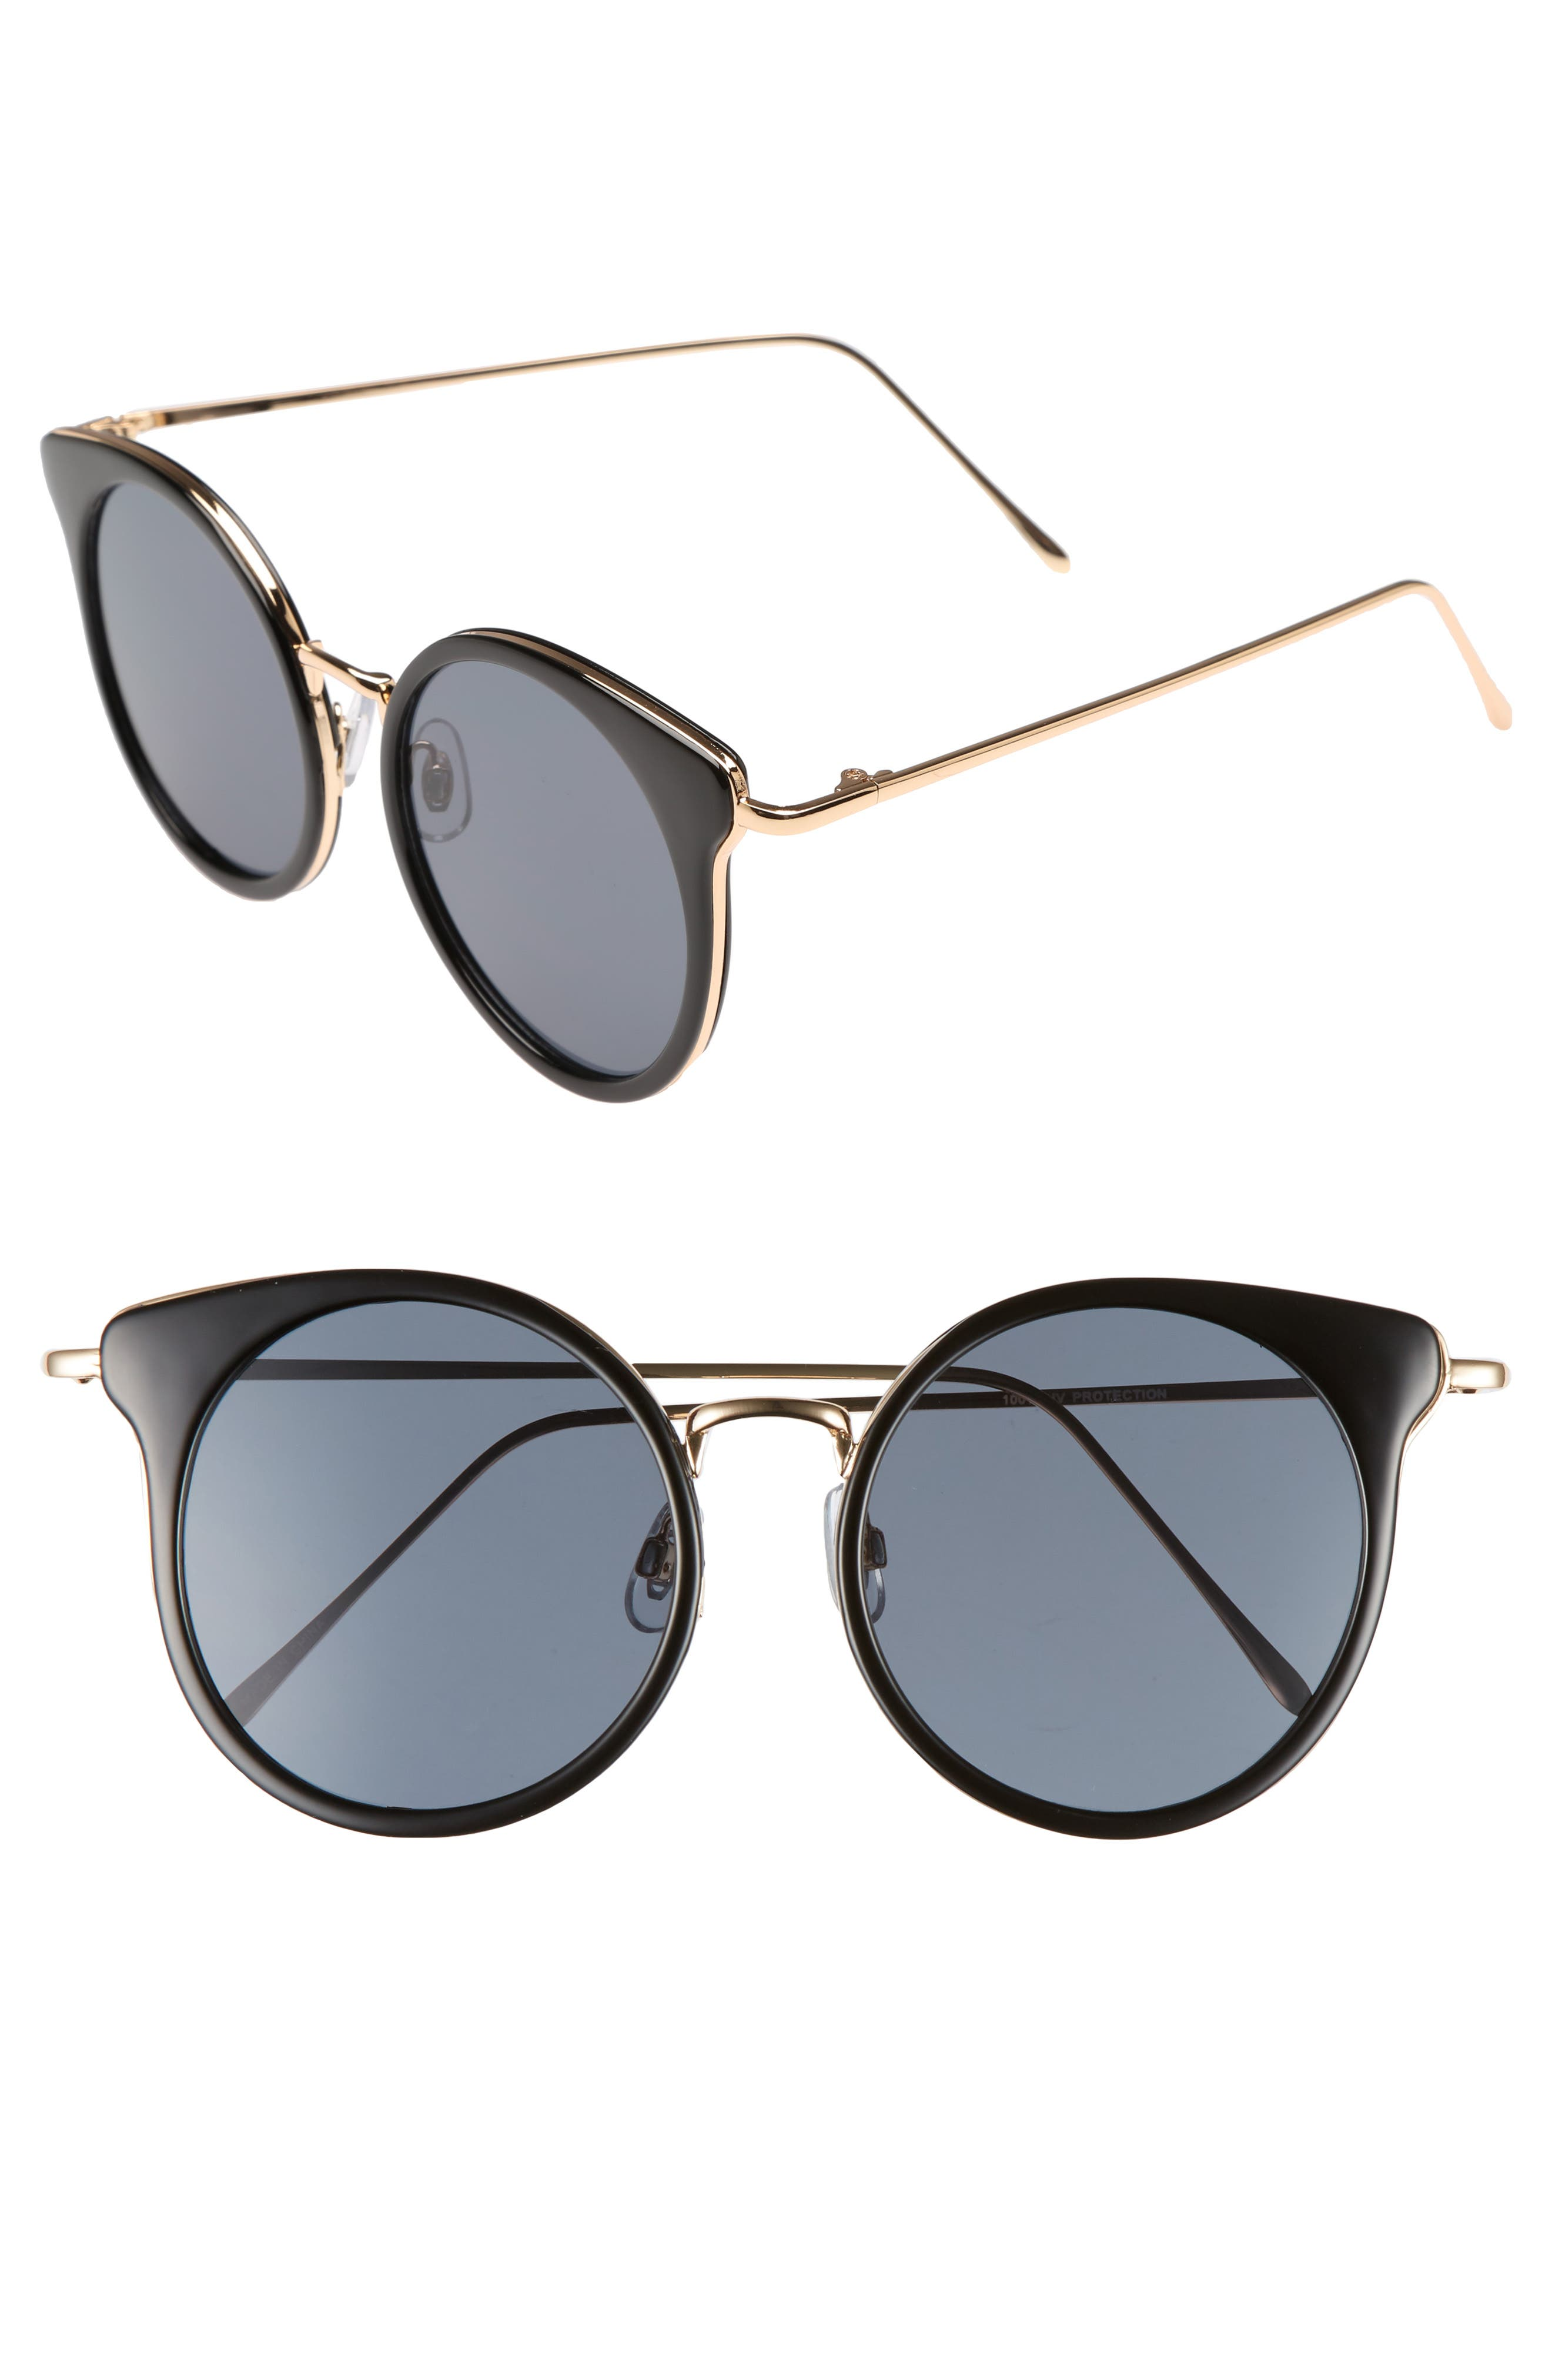 Round Wing Sunglasses,                             Main thumbnail 1, color,                             710